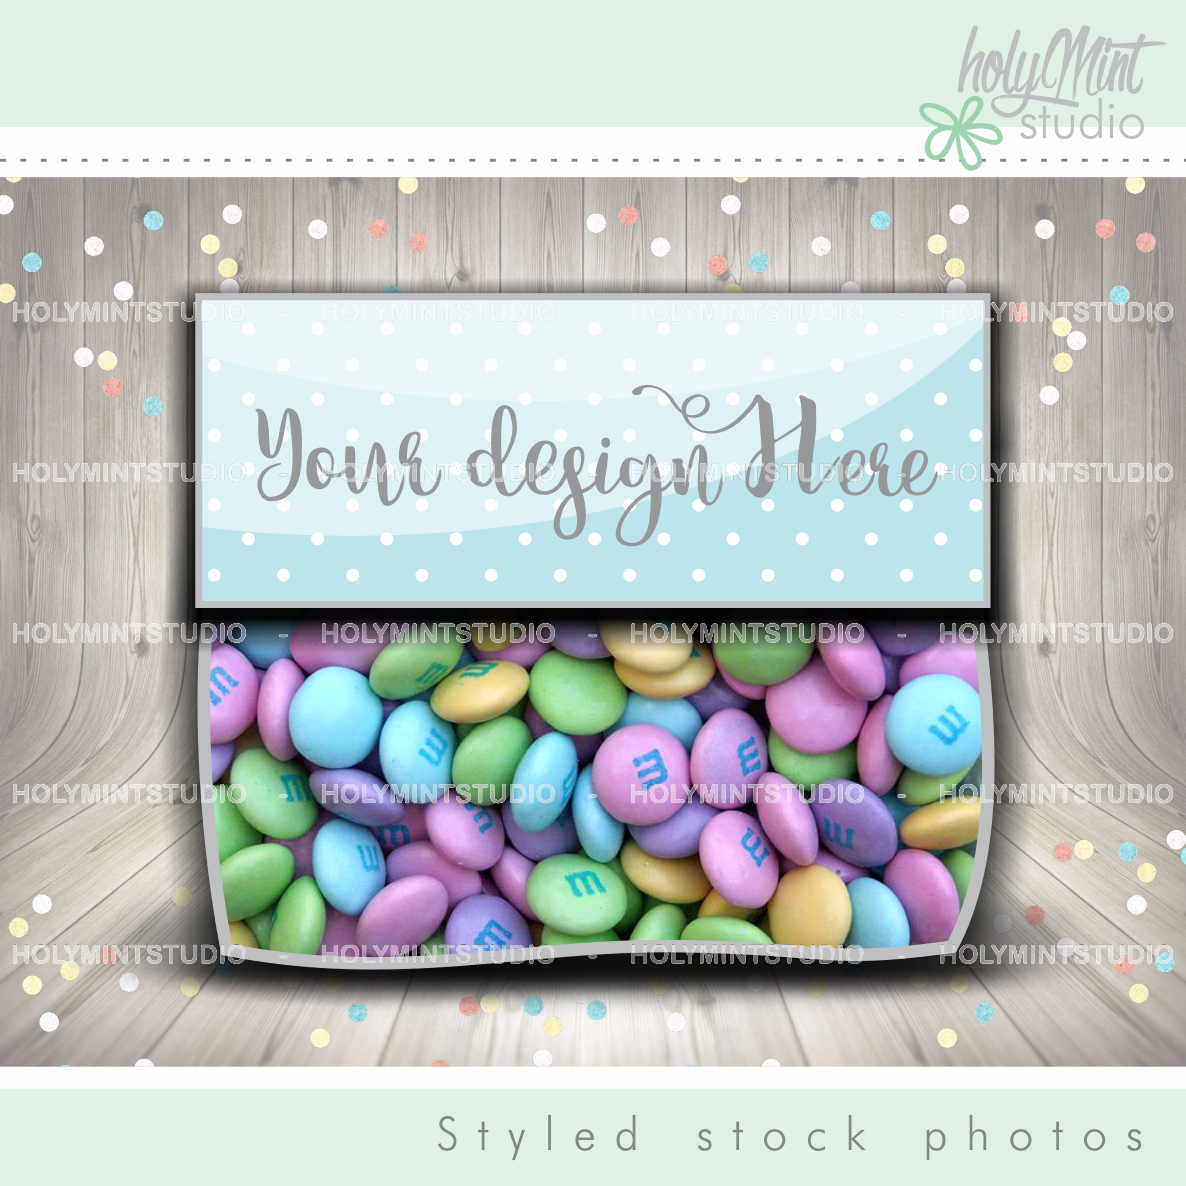 Bag Topper Template  http:// etsy.me/2vY5Rdx  &nbsp;   via @Etsy #template #graphic #graphics #scrapbook #scrapbooking<br>http://pic.twitter.com/LrpPWHMvfU